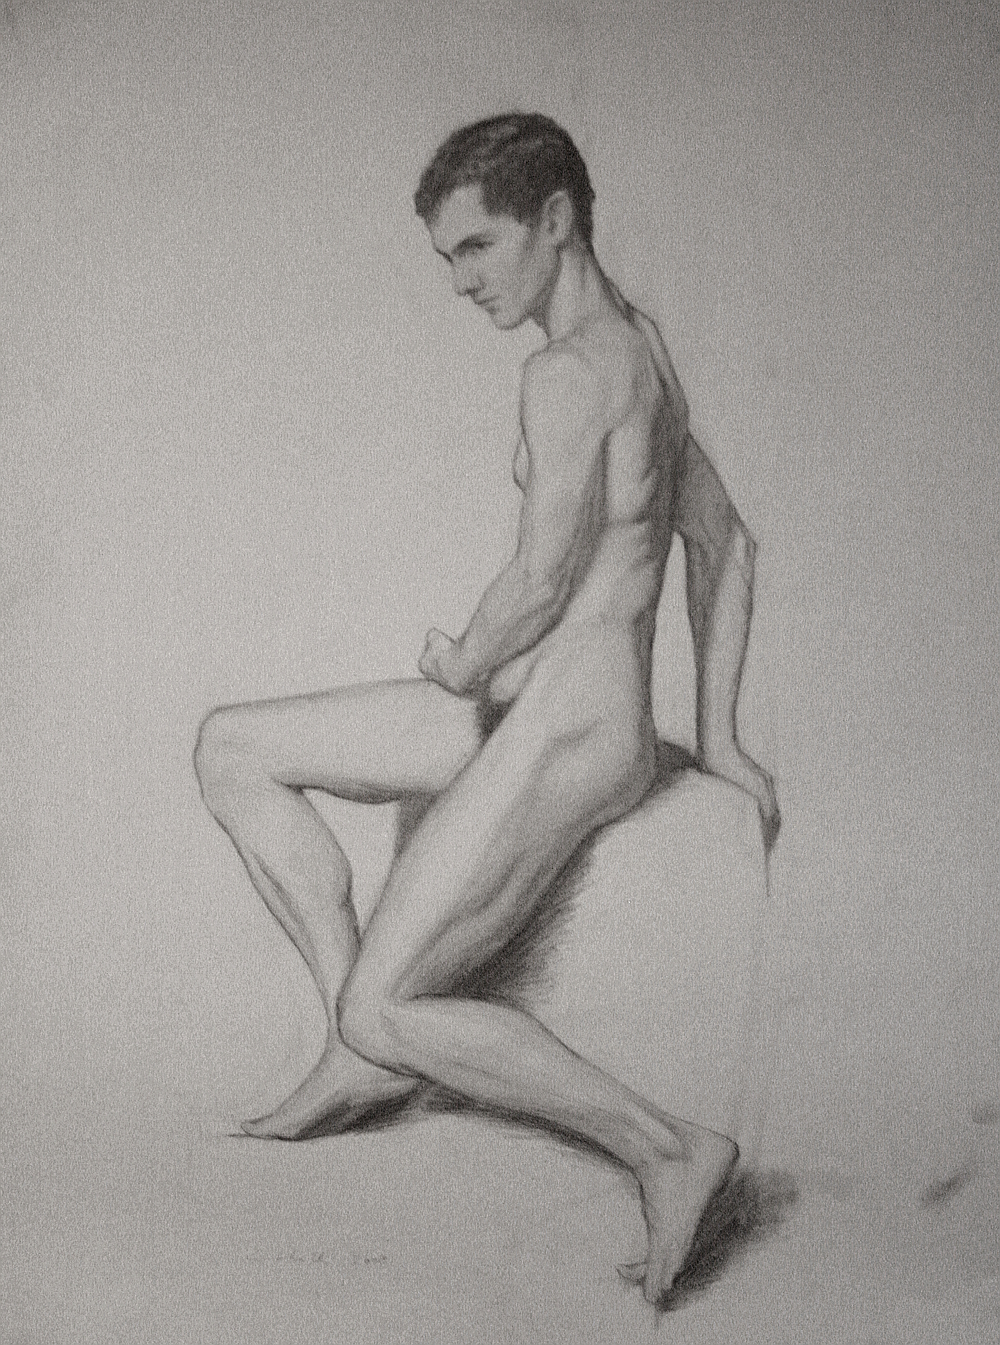 Nude,  Pencil on Paper, 60 x 42cm, 2008